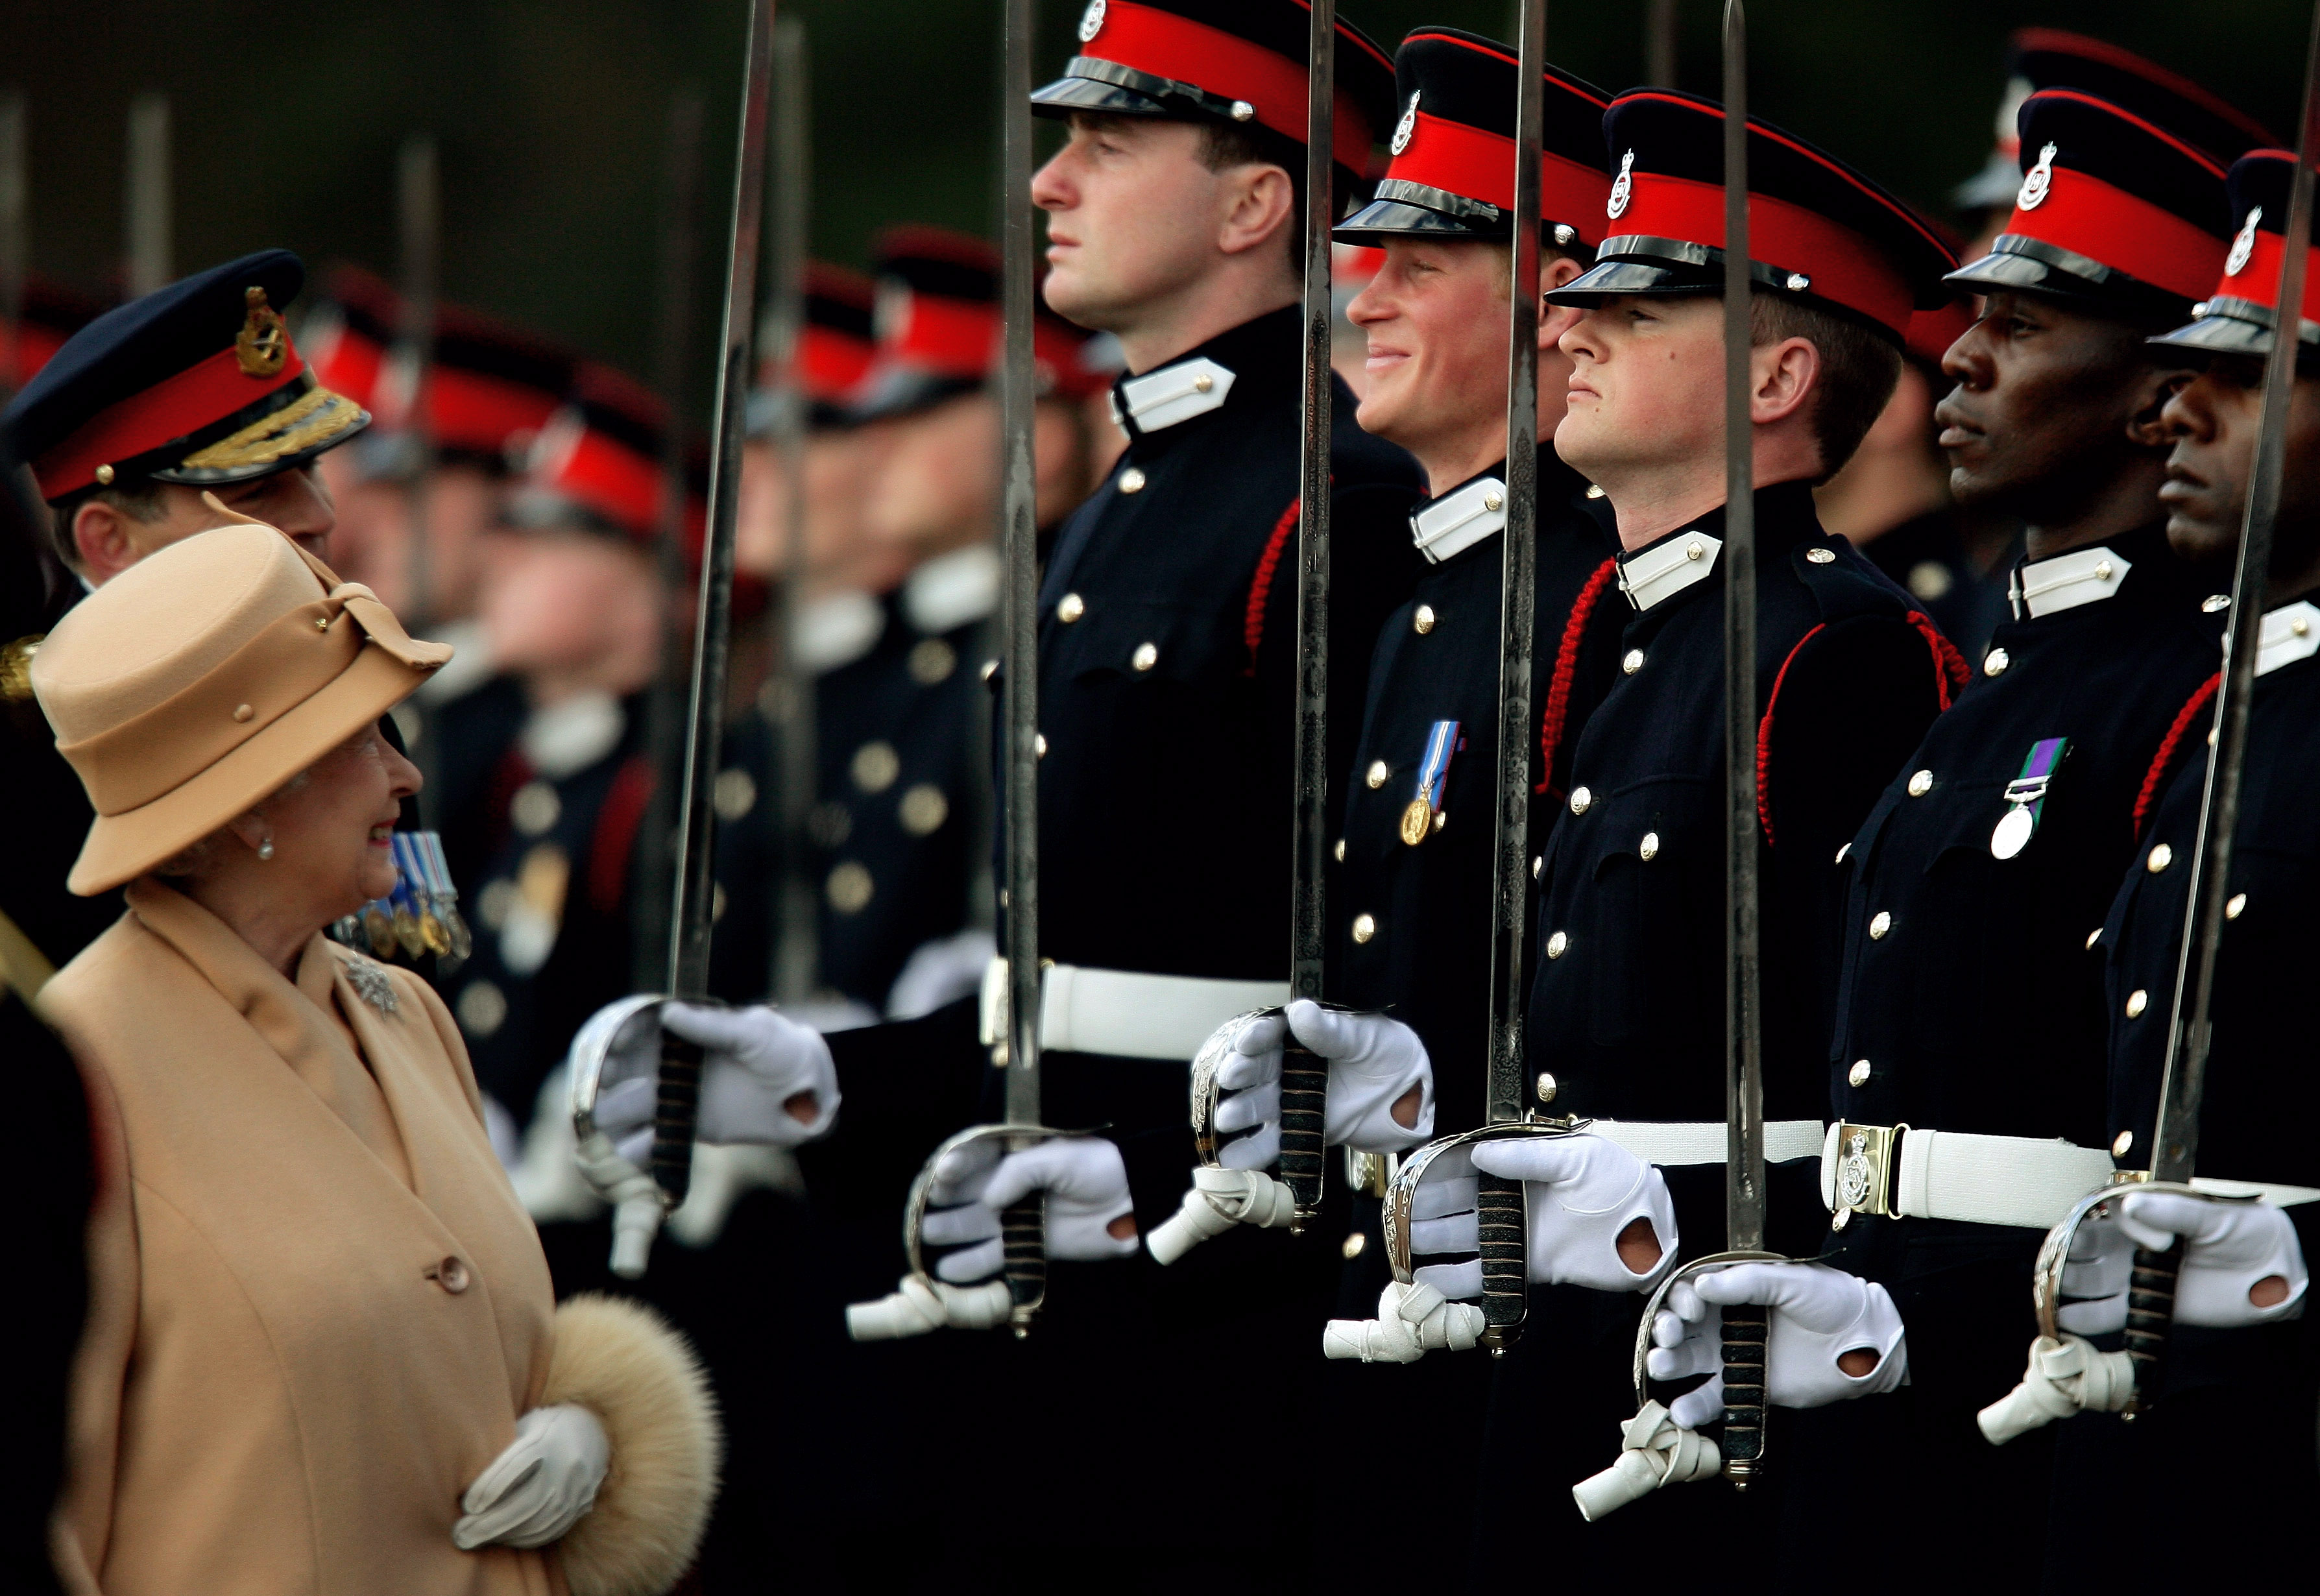 Queen Elizabeth smiles with Prince Harry during the Sovereign's Parade at the Royal Military Academy in Sandhurst, southern England on April 12, 2006.